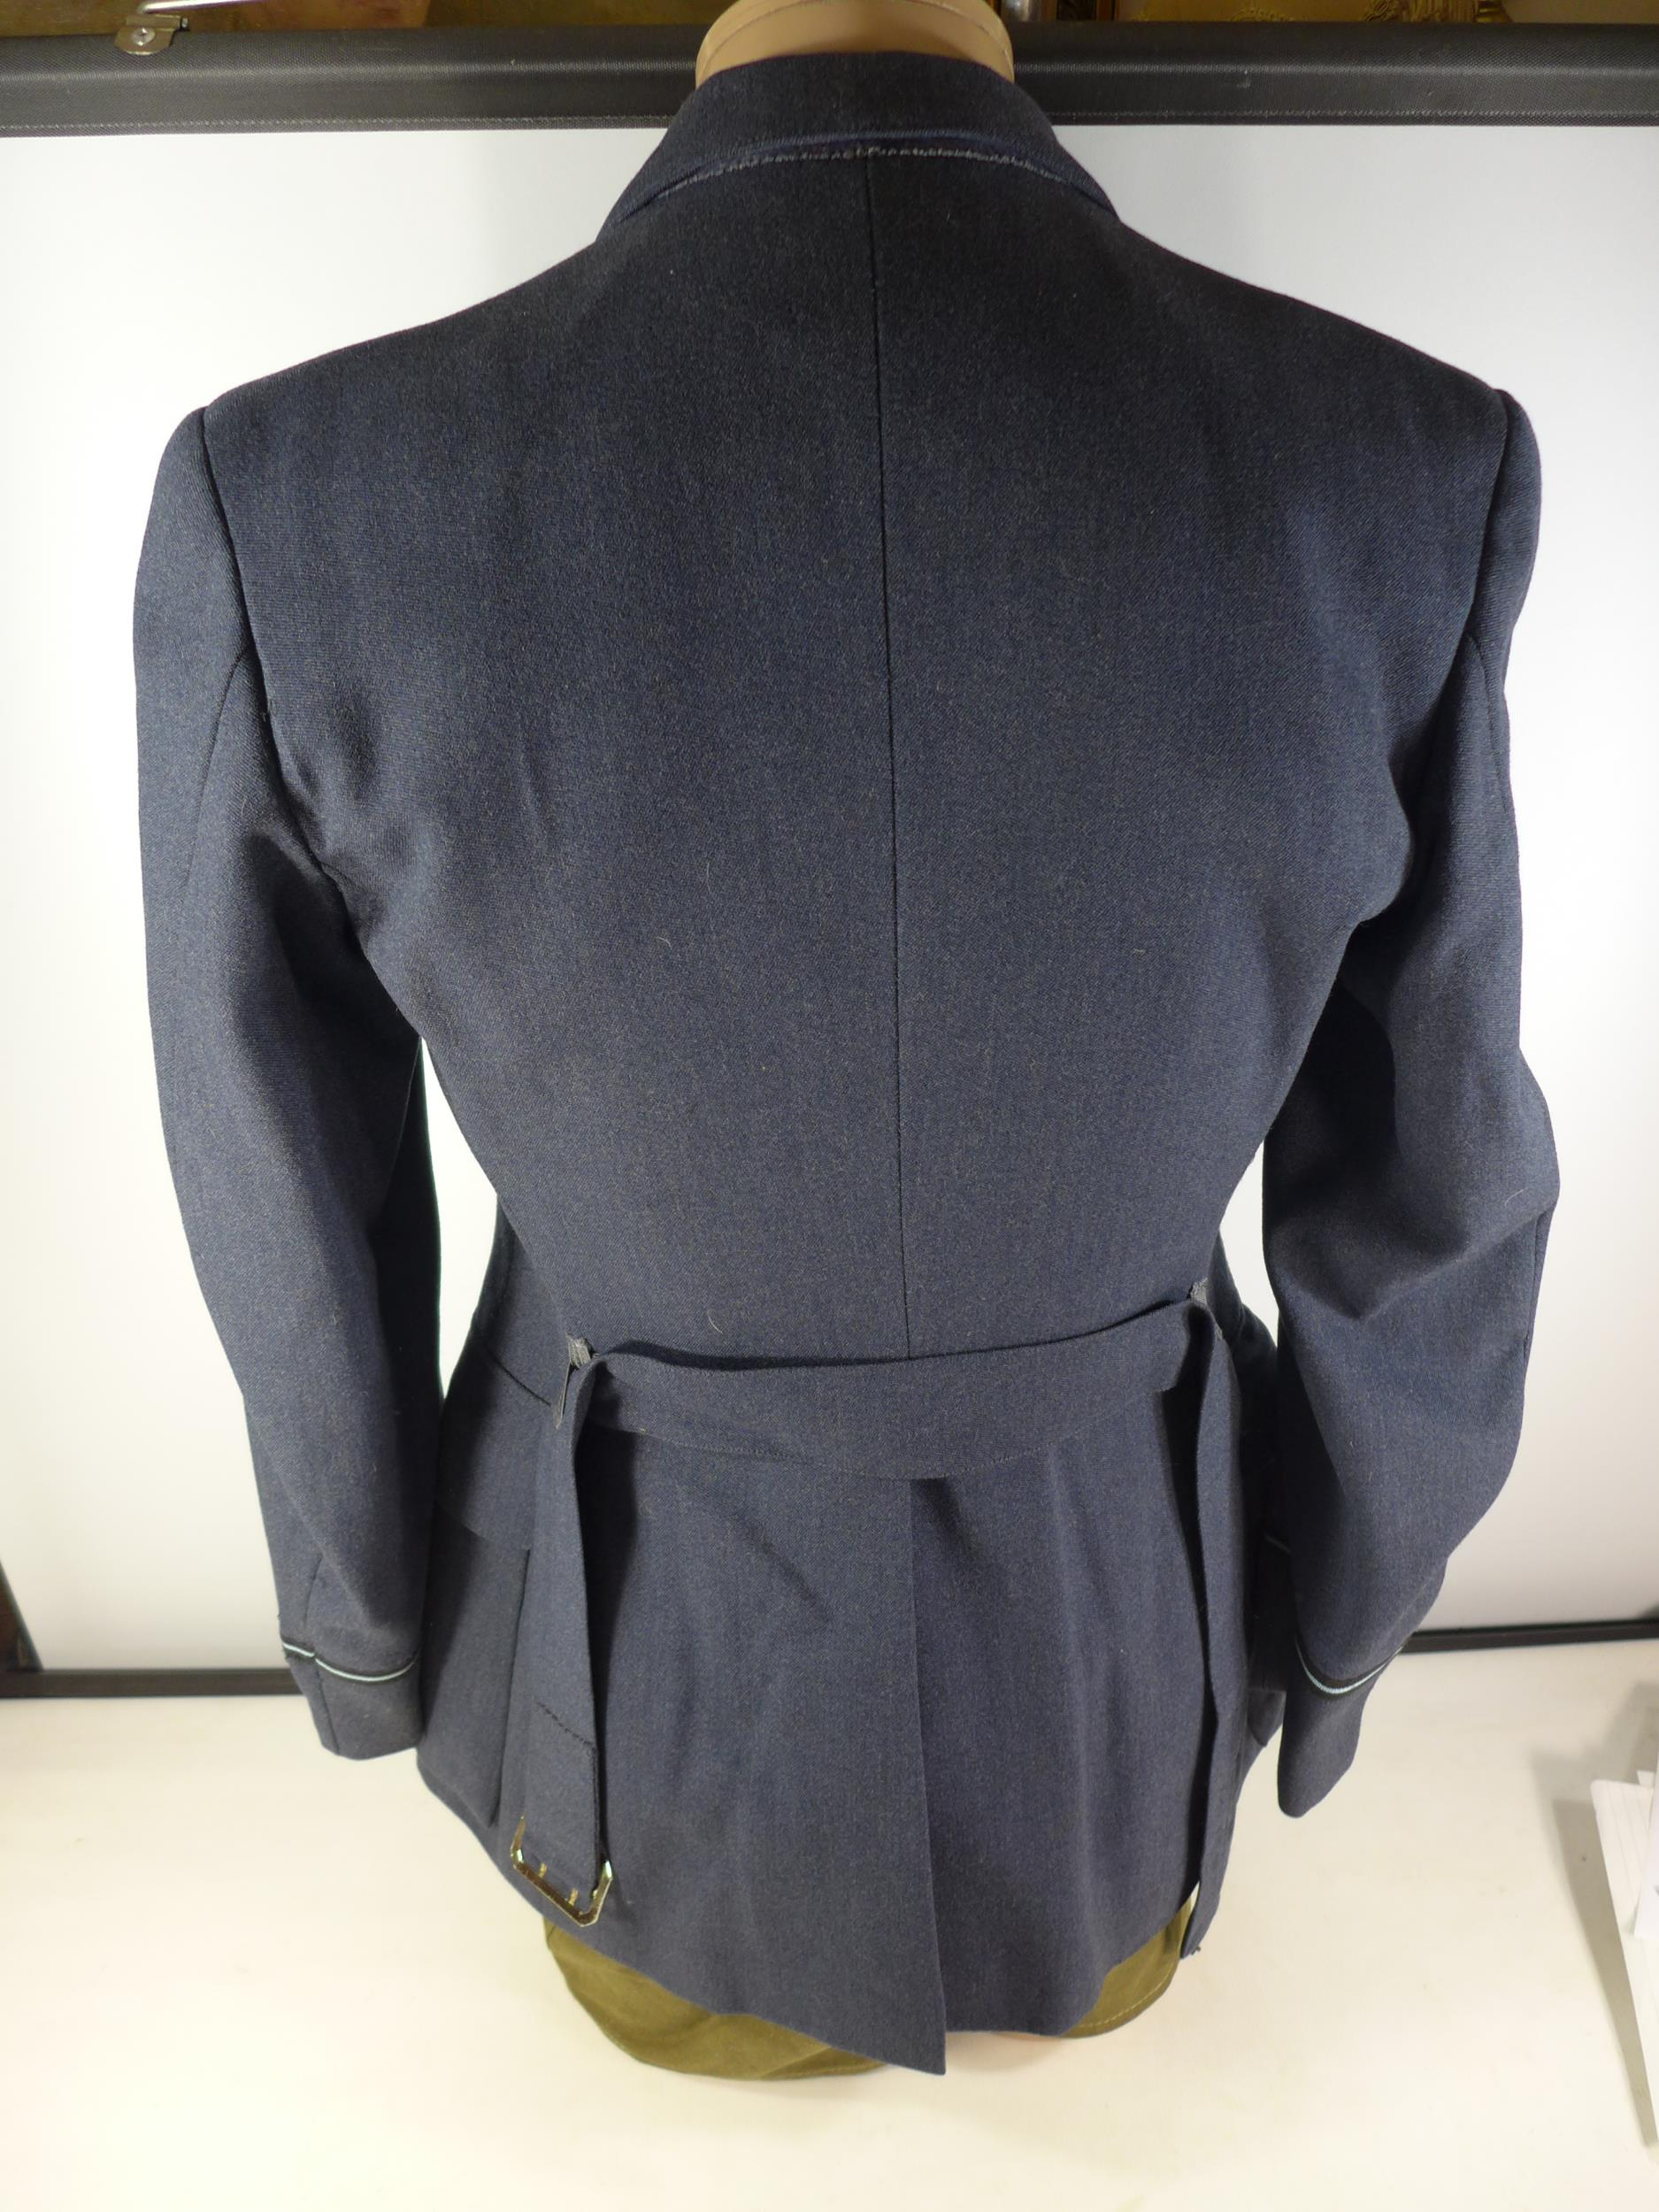 A RAF UNIFORM COMPRISING OF JACKET, TROUSERS AND BERET, SIZE 7 1/2 - Image 3 of 3